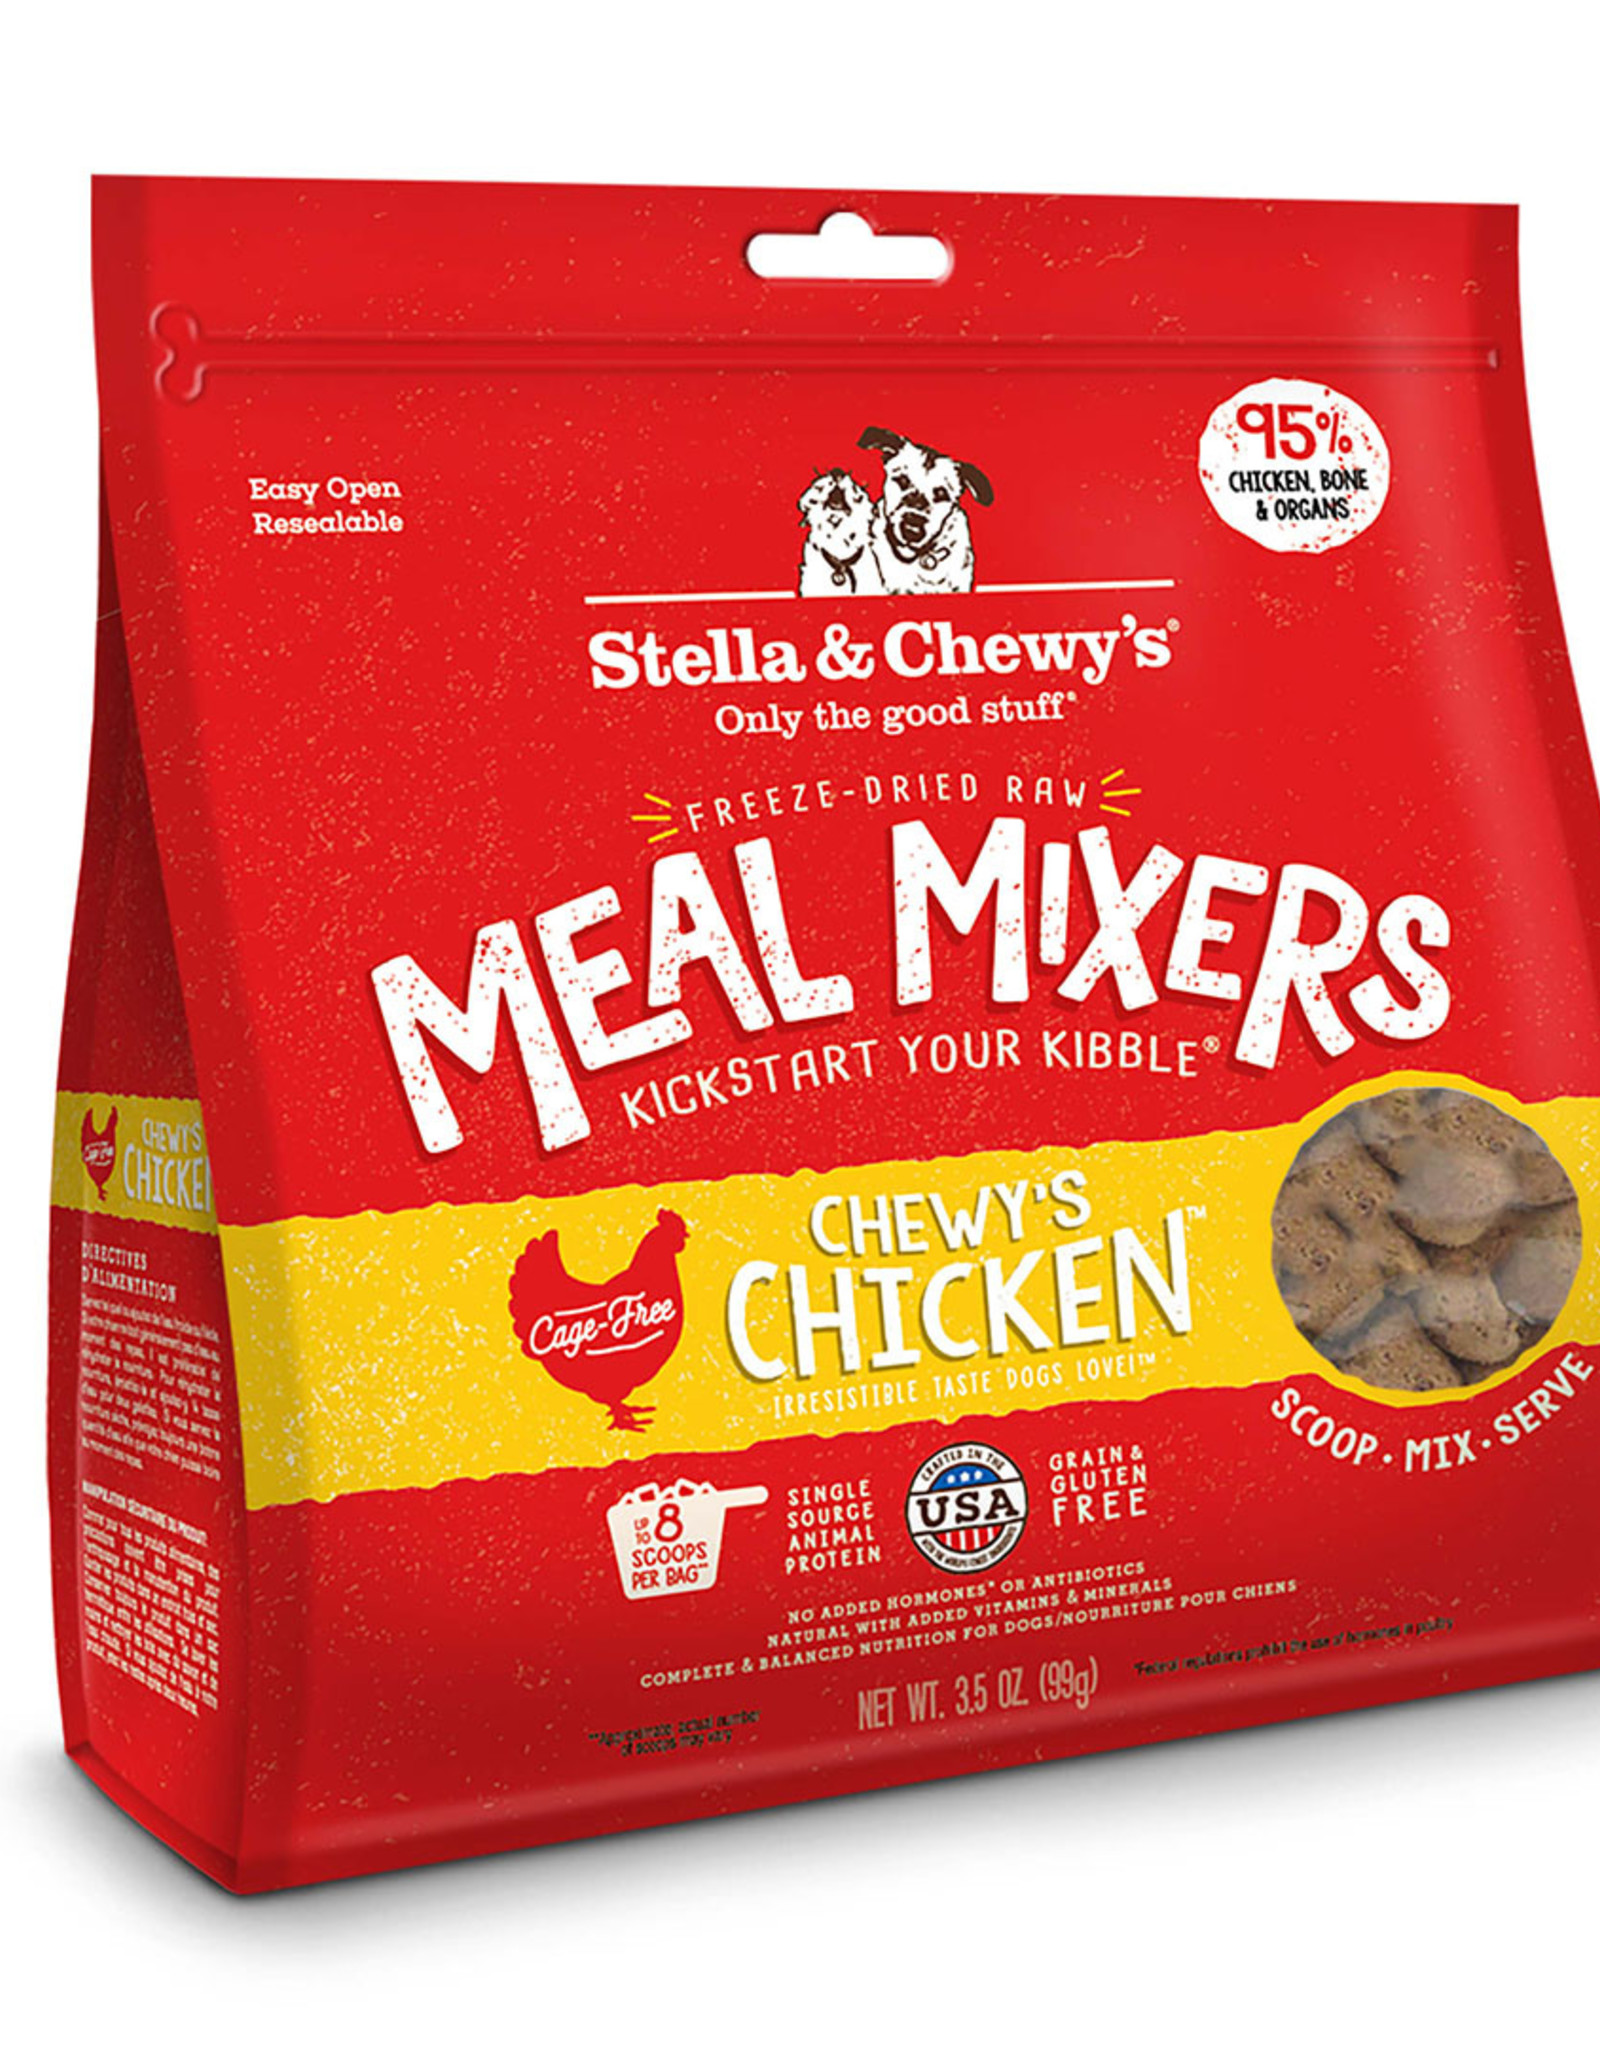 STELLA & CHEWY'S LLC STELLA & CHEWY'S FREEZE-DRIED CHEWY'S CHICKEN MEAL MIXERS 8OZ